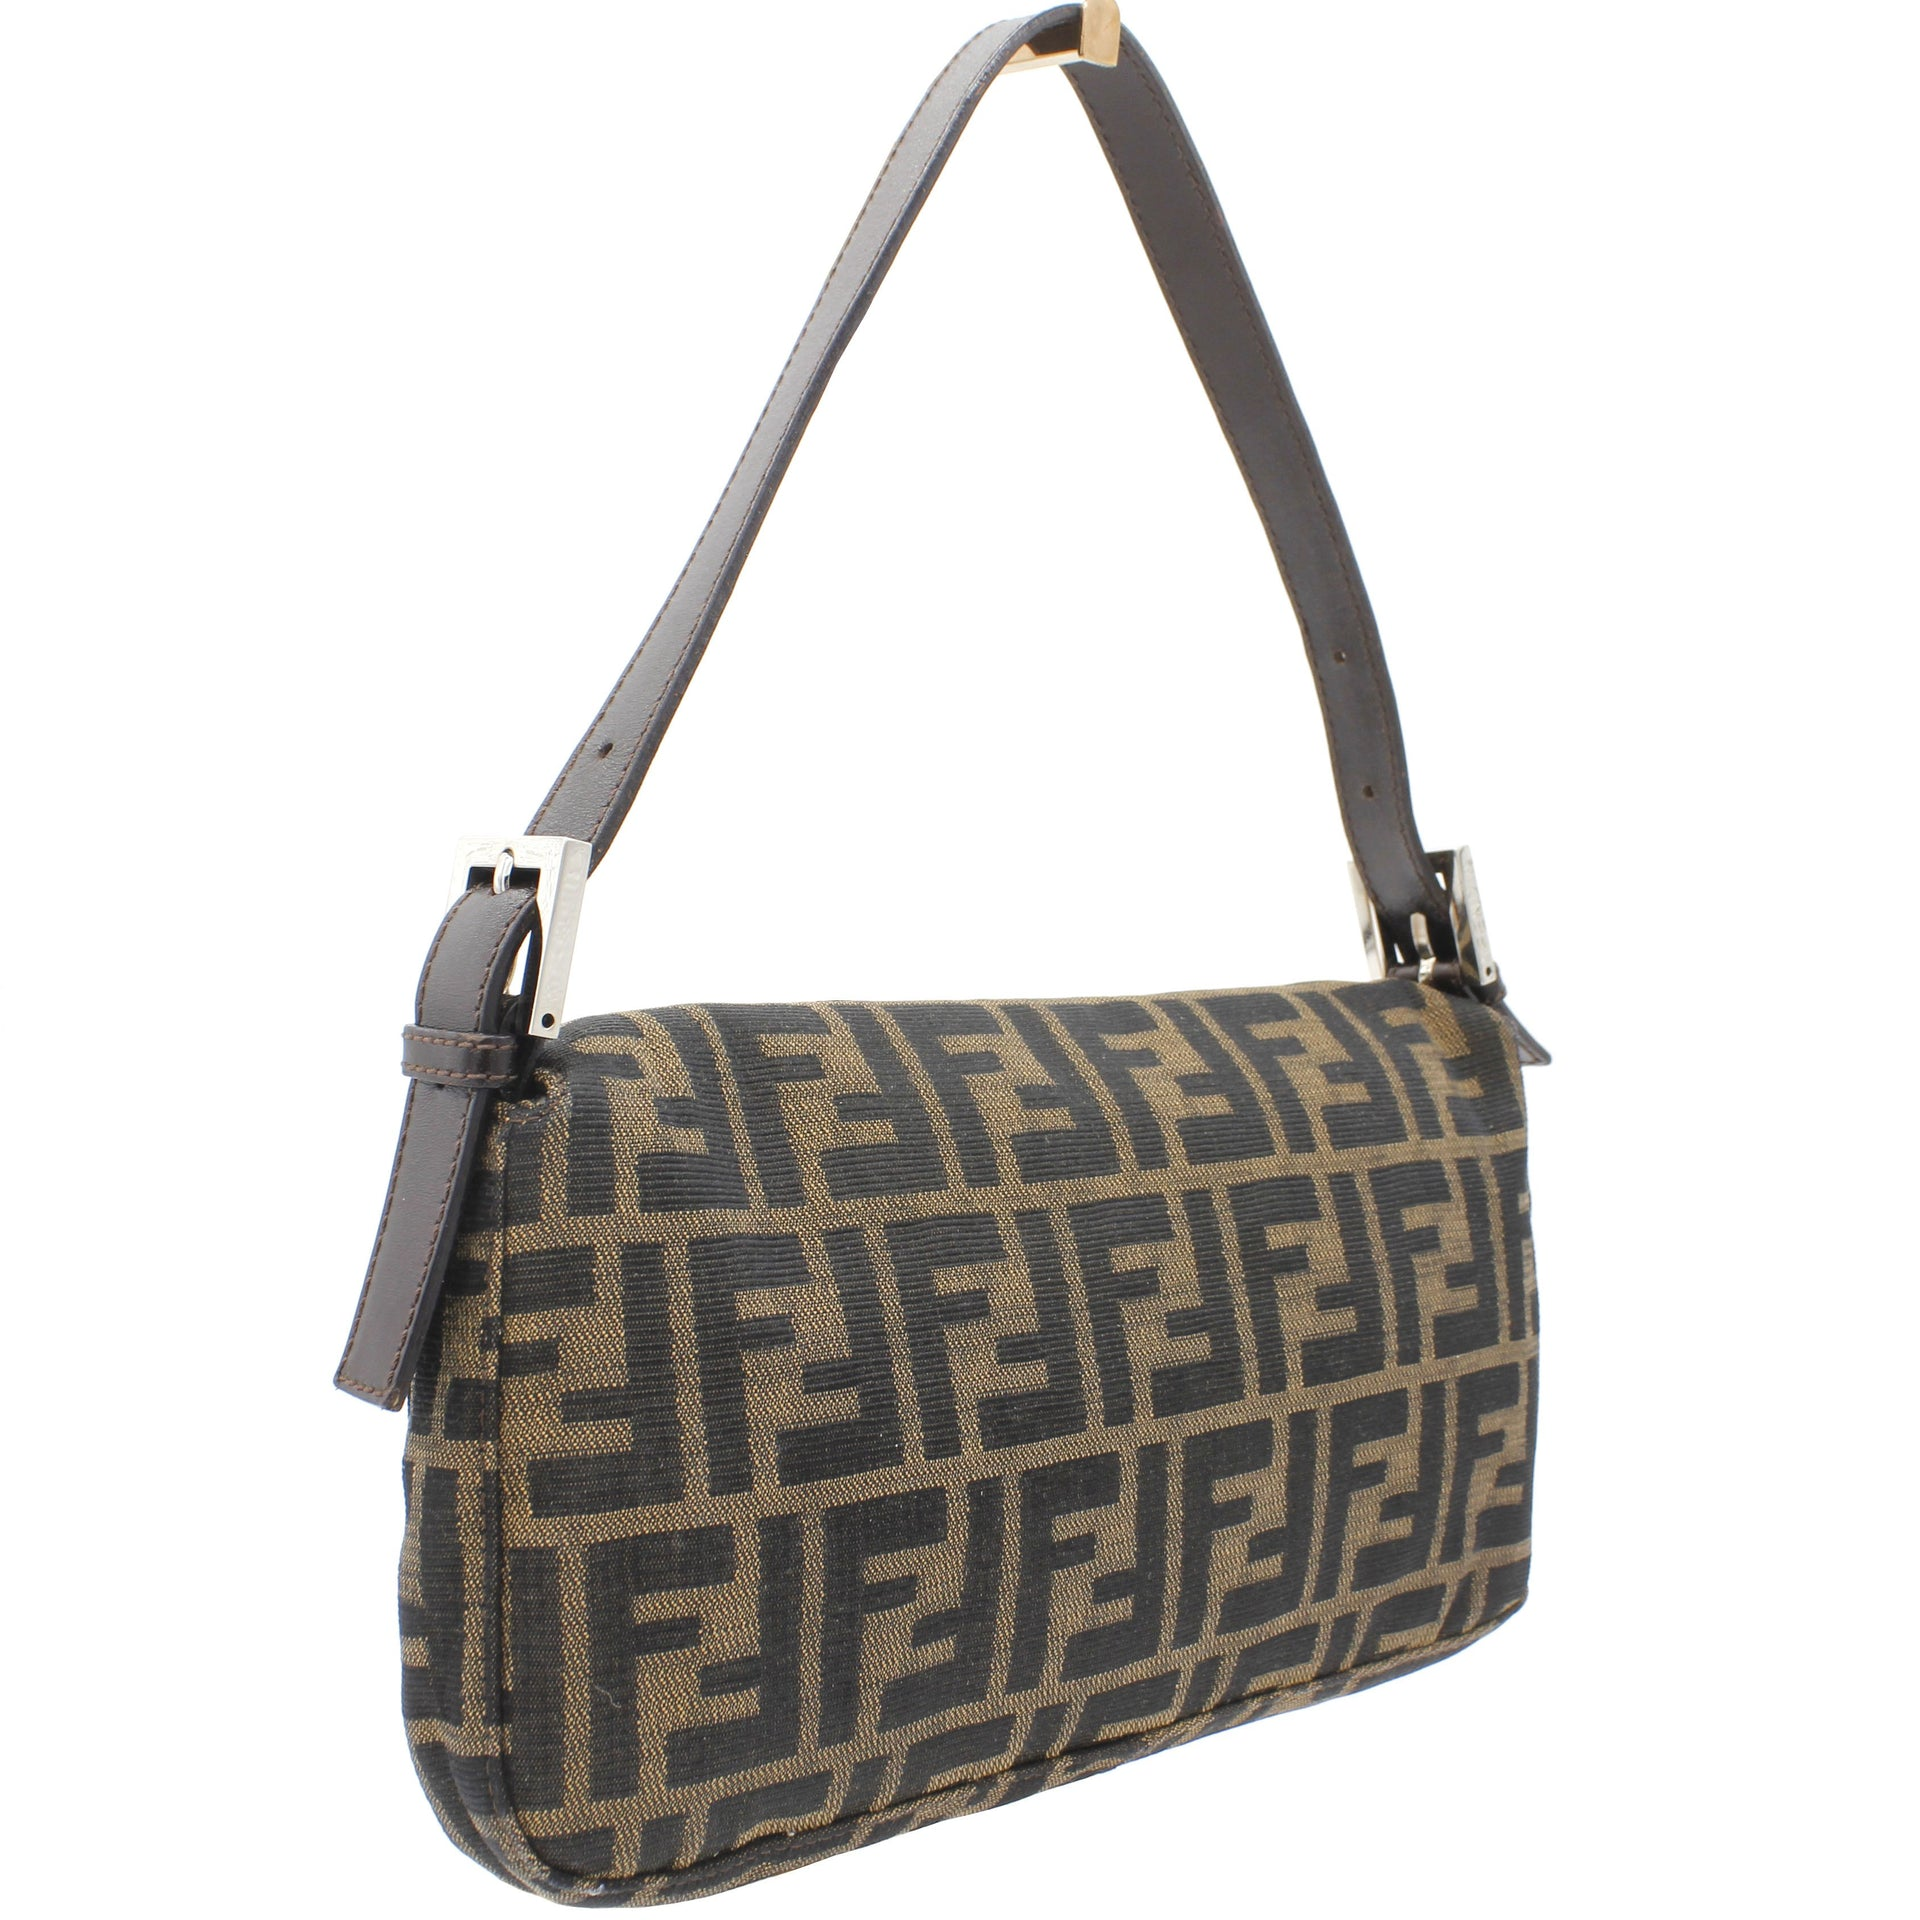 Zucca Baguette Monogram Canvas Shoulder Bag